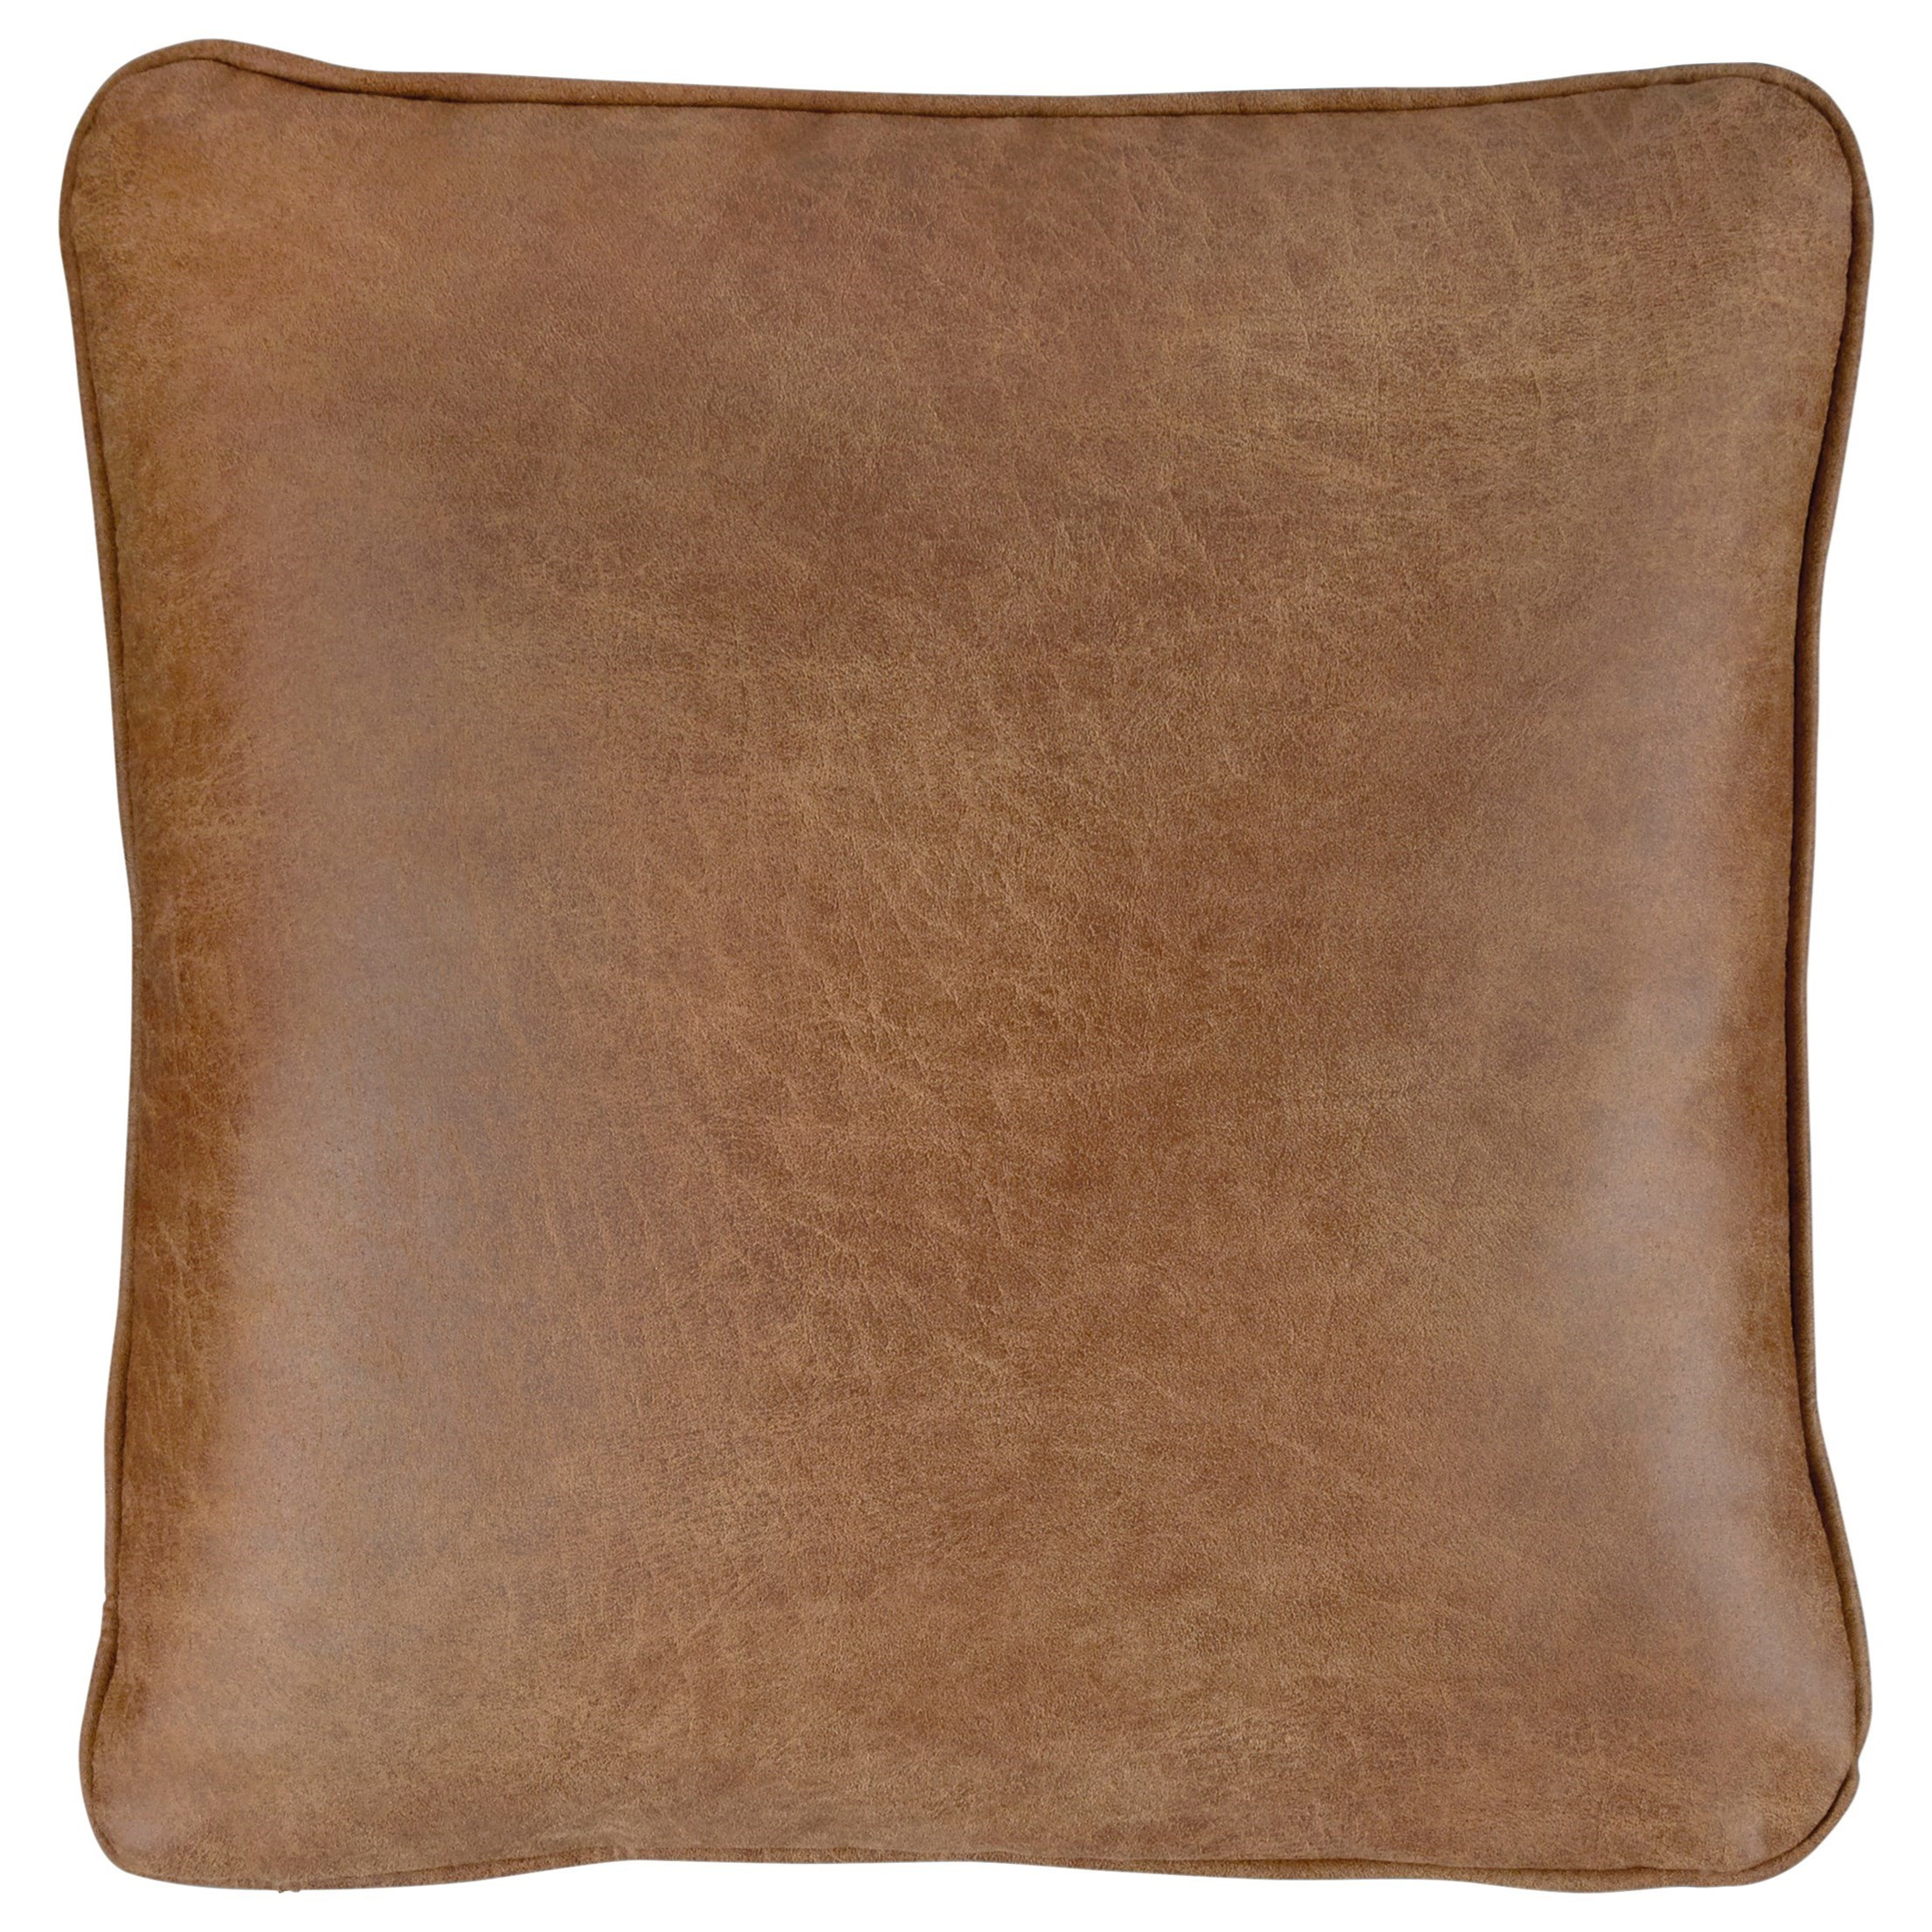 Pillows Cortnie Caramel Pillow by Signature Design by Ashley at Sparks HomeStore